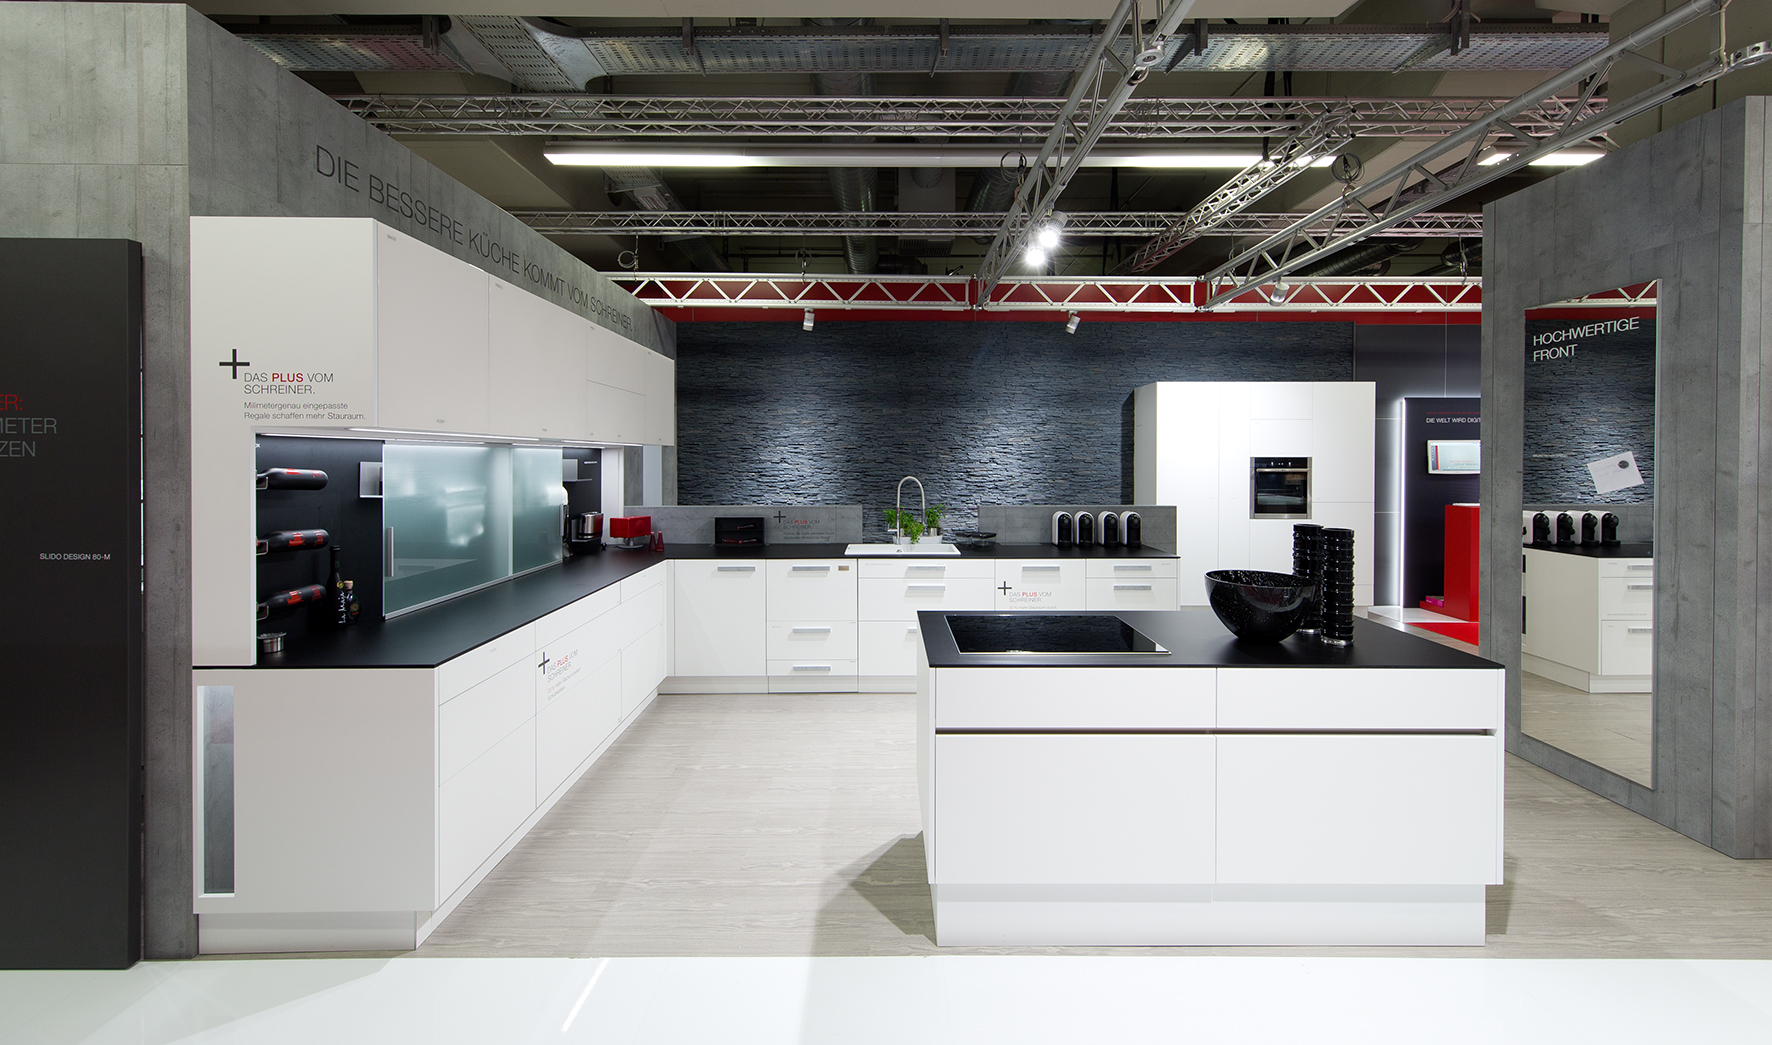 The kitchen with added value was in the spotlight of the Häfele exhibition appearance.